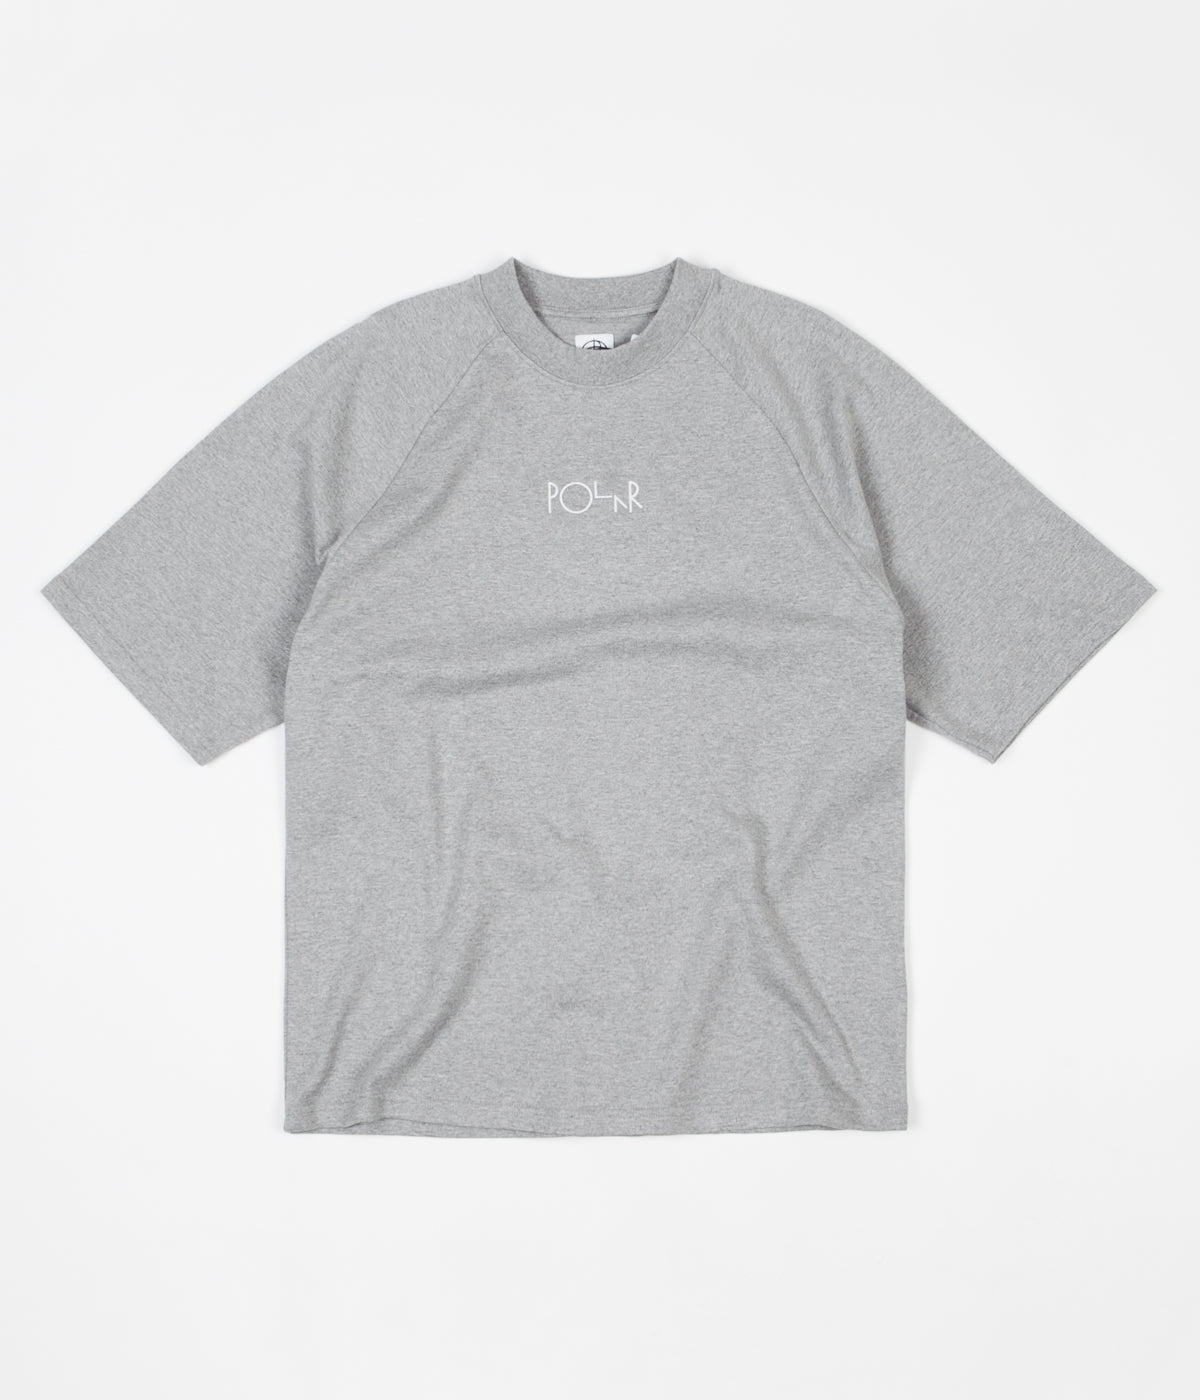 Polar Default T-Shirt - Heather Grey